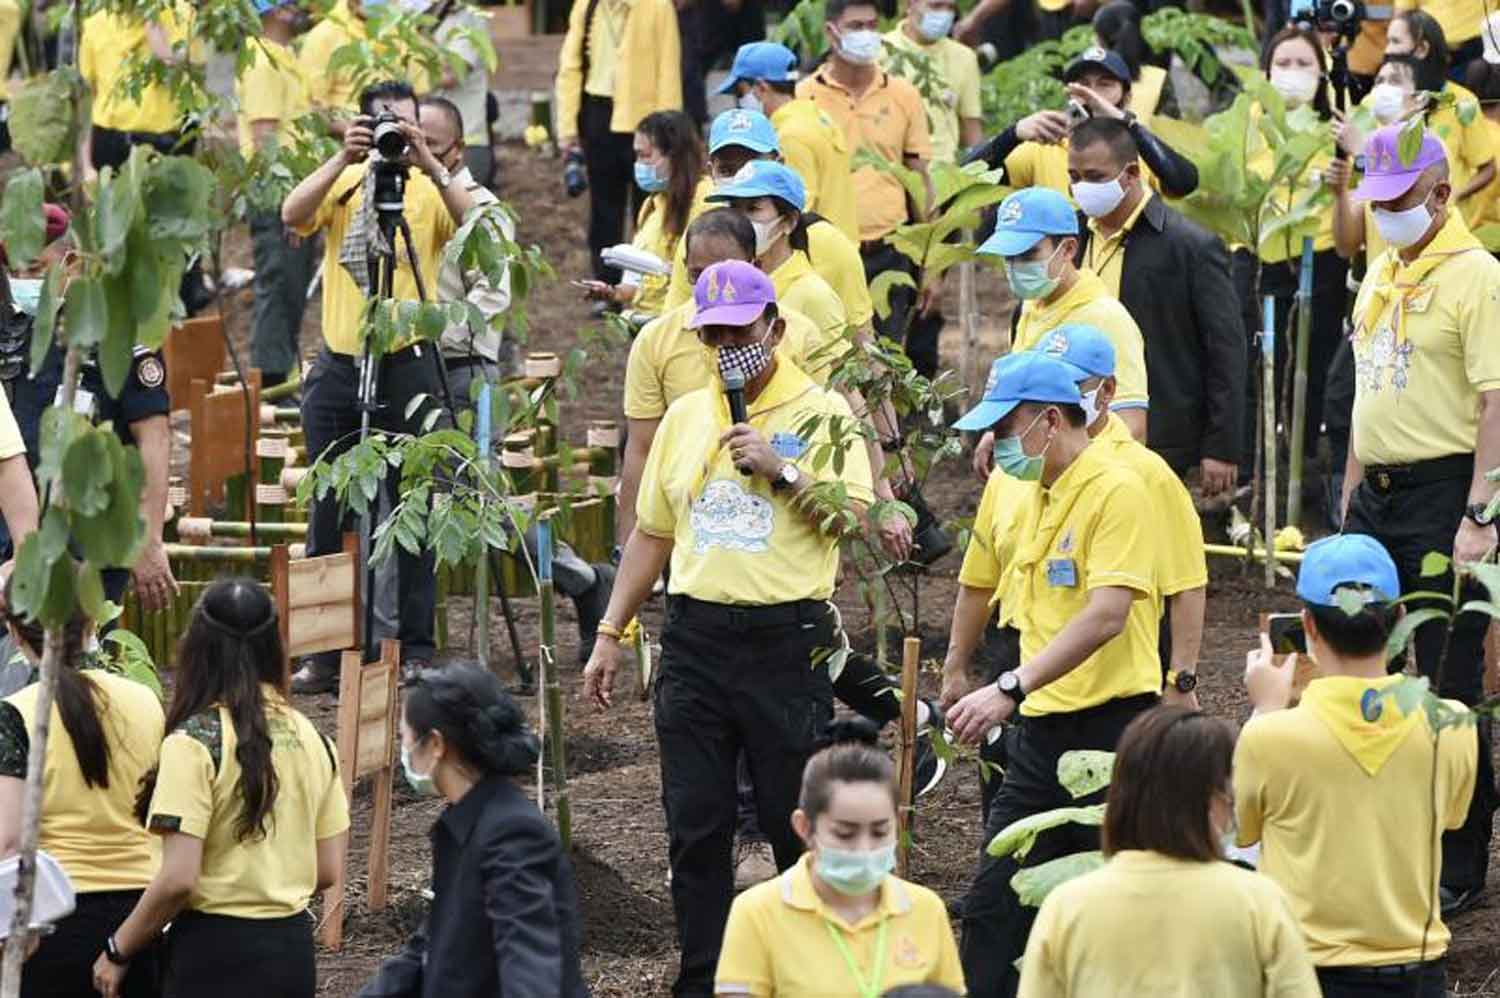 Prime Minister Prayut Chan-o-cha, centre, inaugurates a nationwide reforestation project at the Namtok Buatong-Namphu Jed-si National Park in Mae Taeng district of Chiang Mai on Friday. (Government House photo)